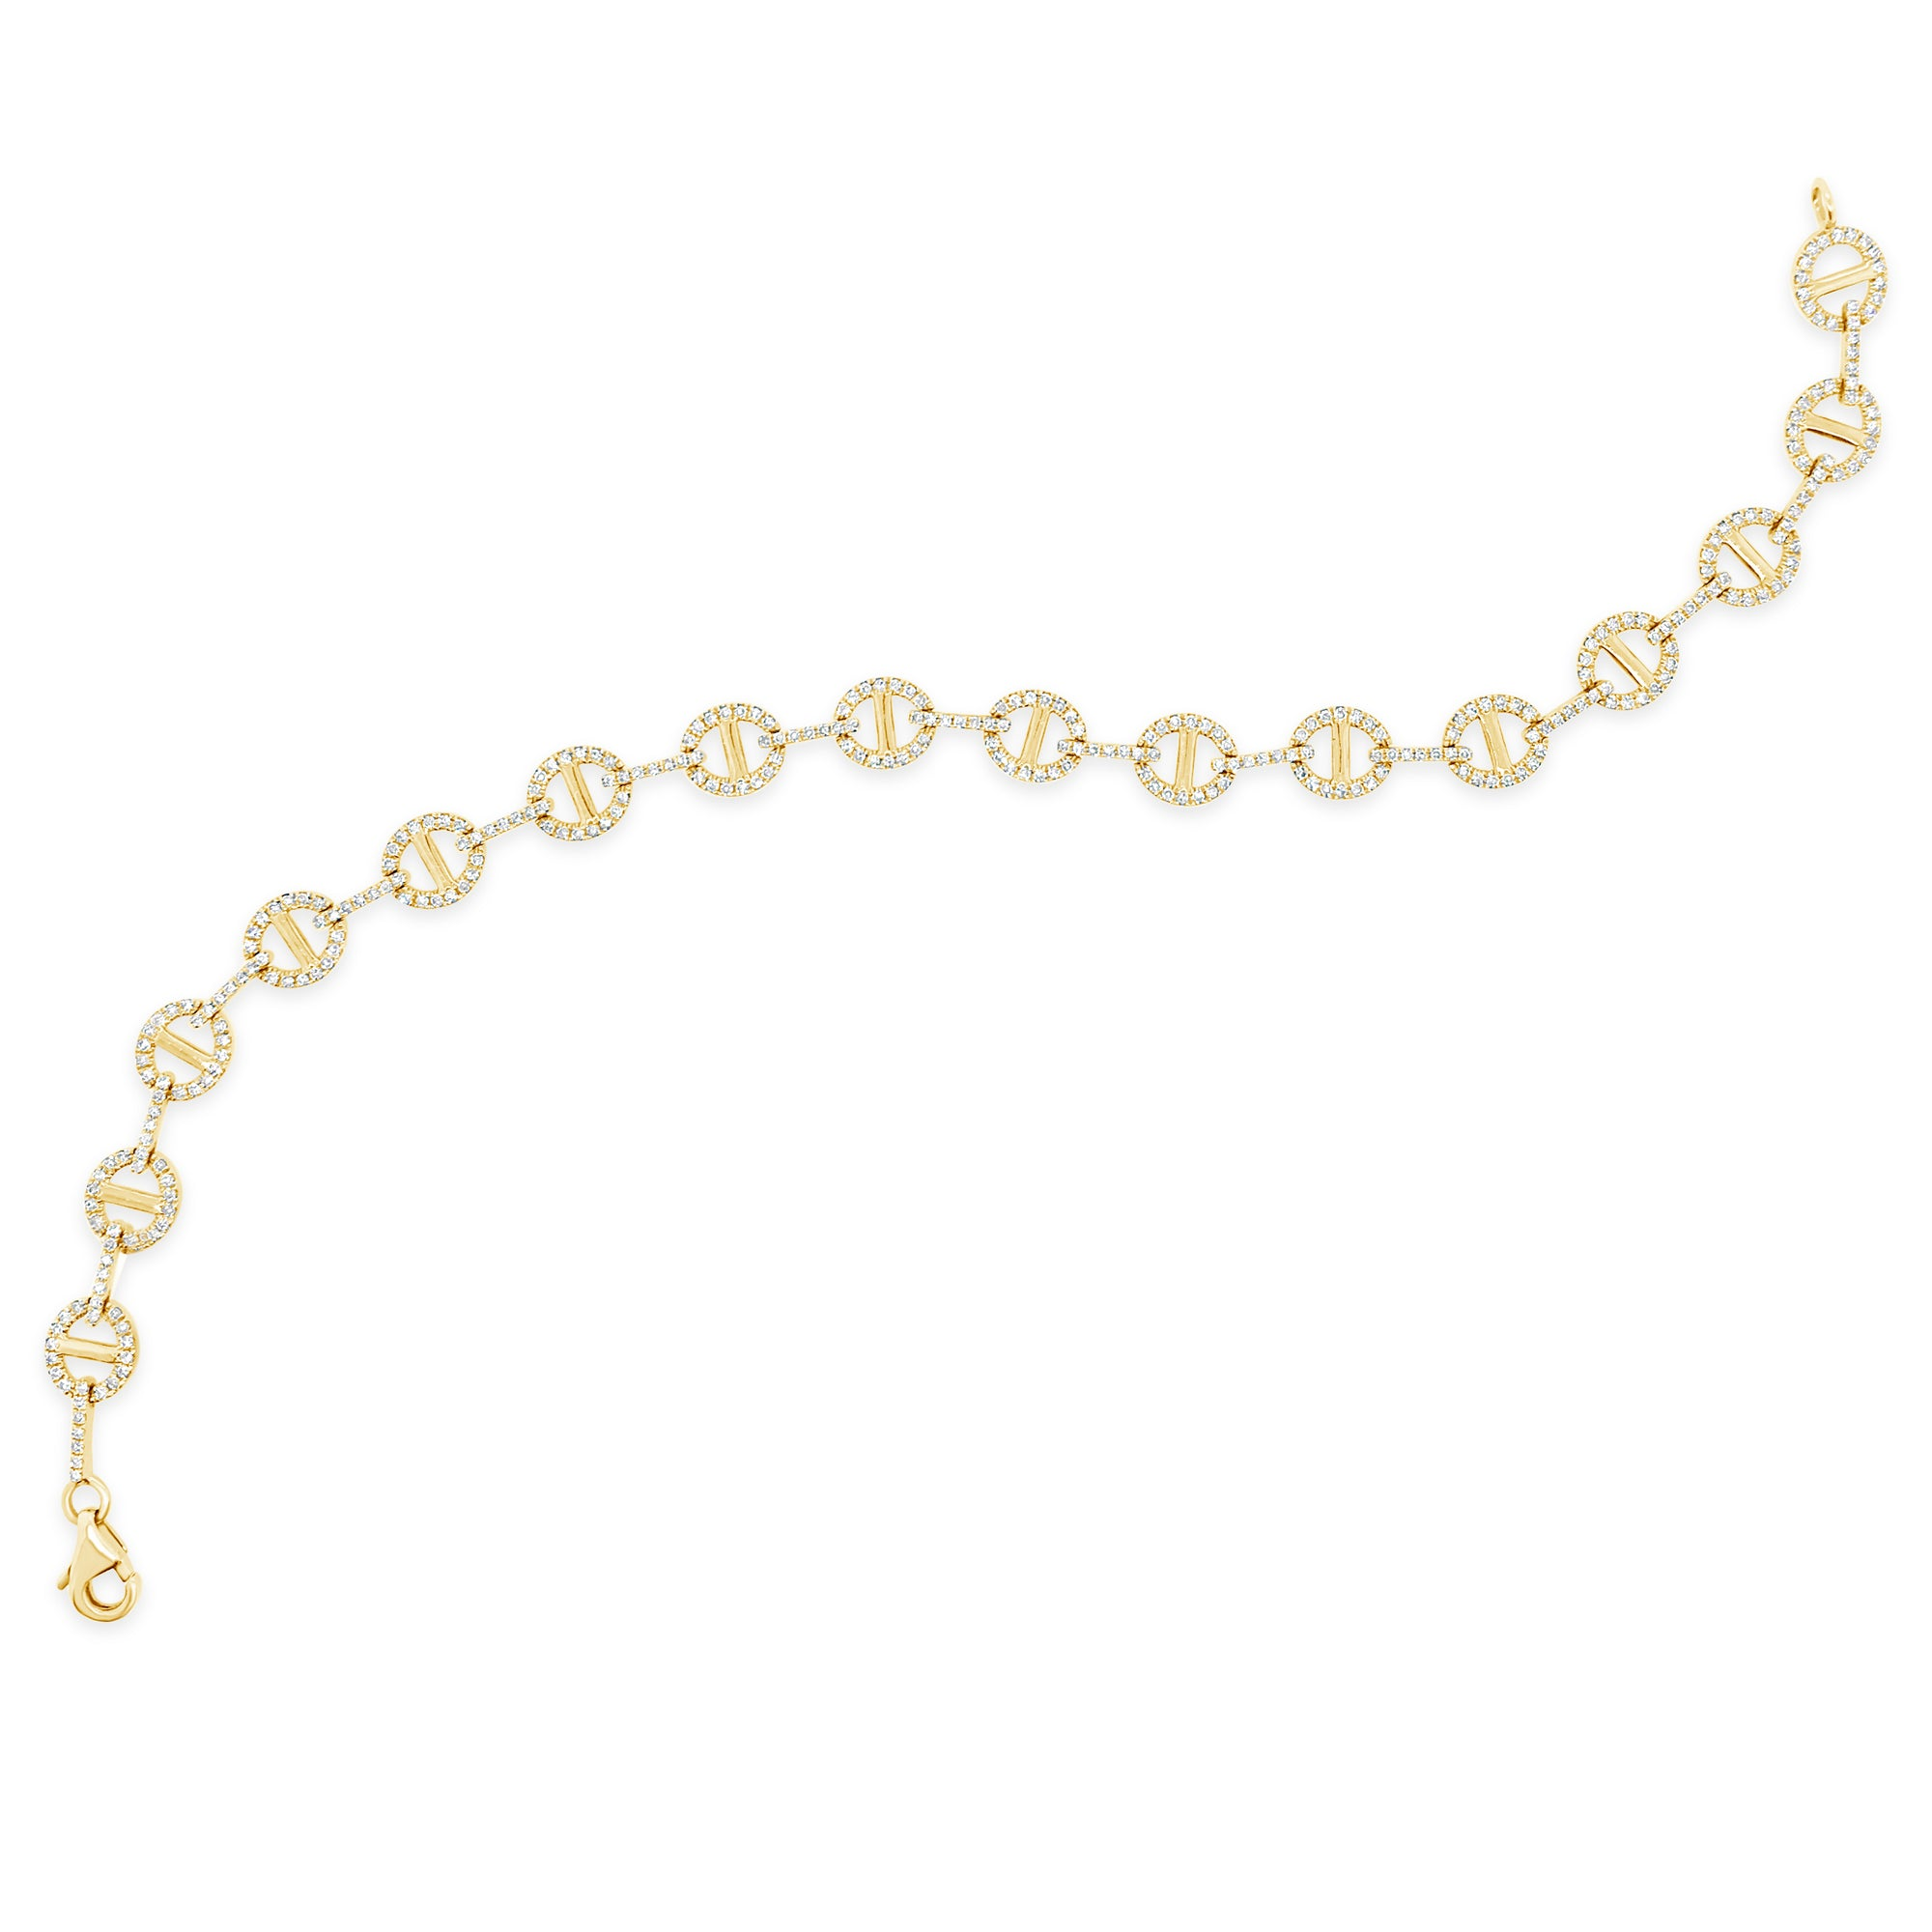 Diamond & Gold Tri-Link Bracelet